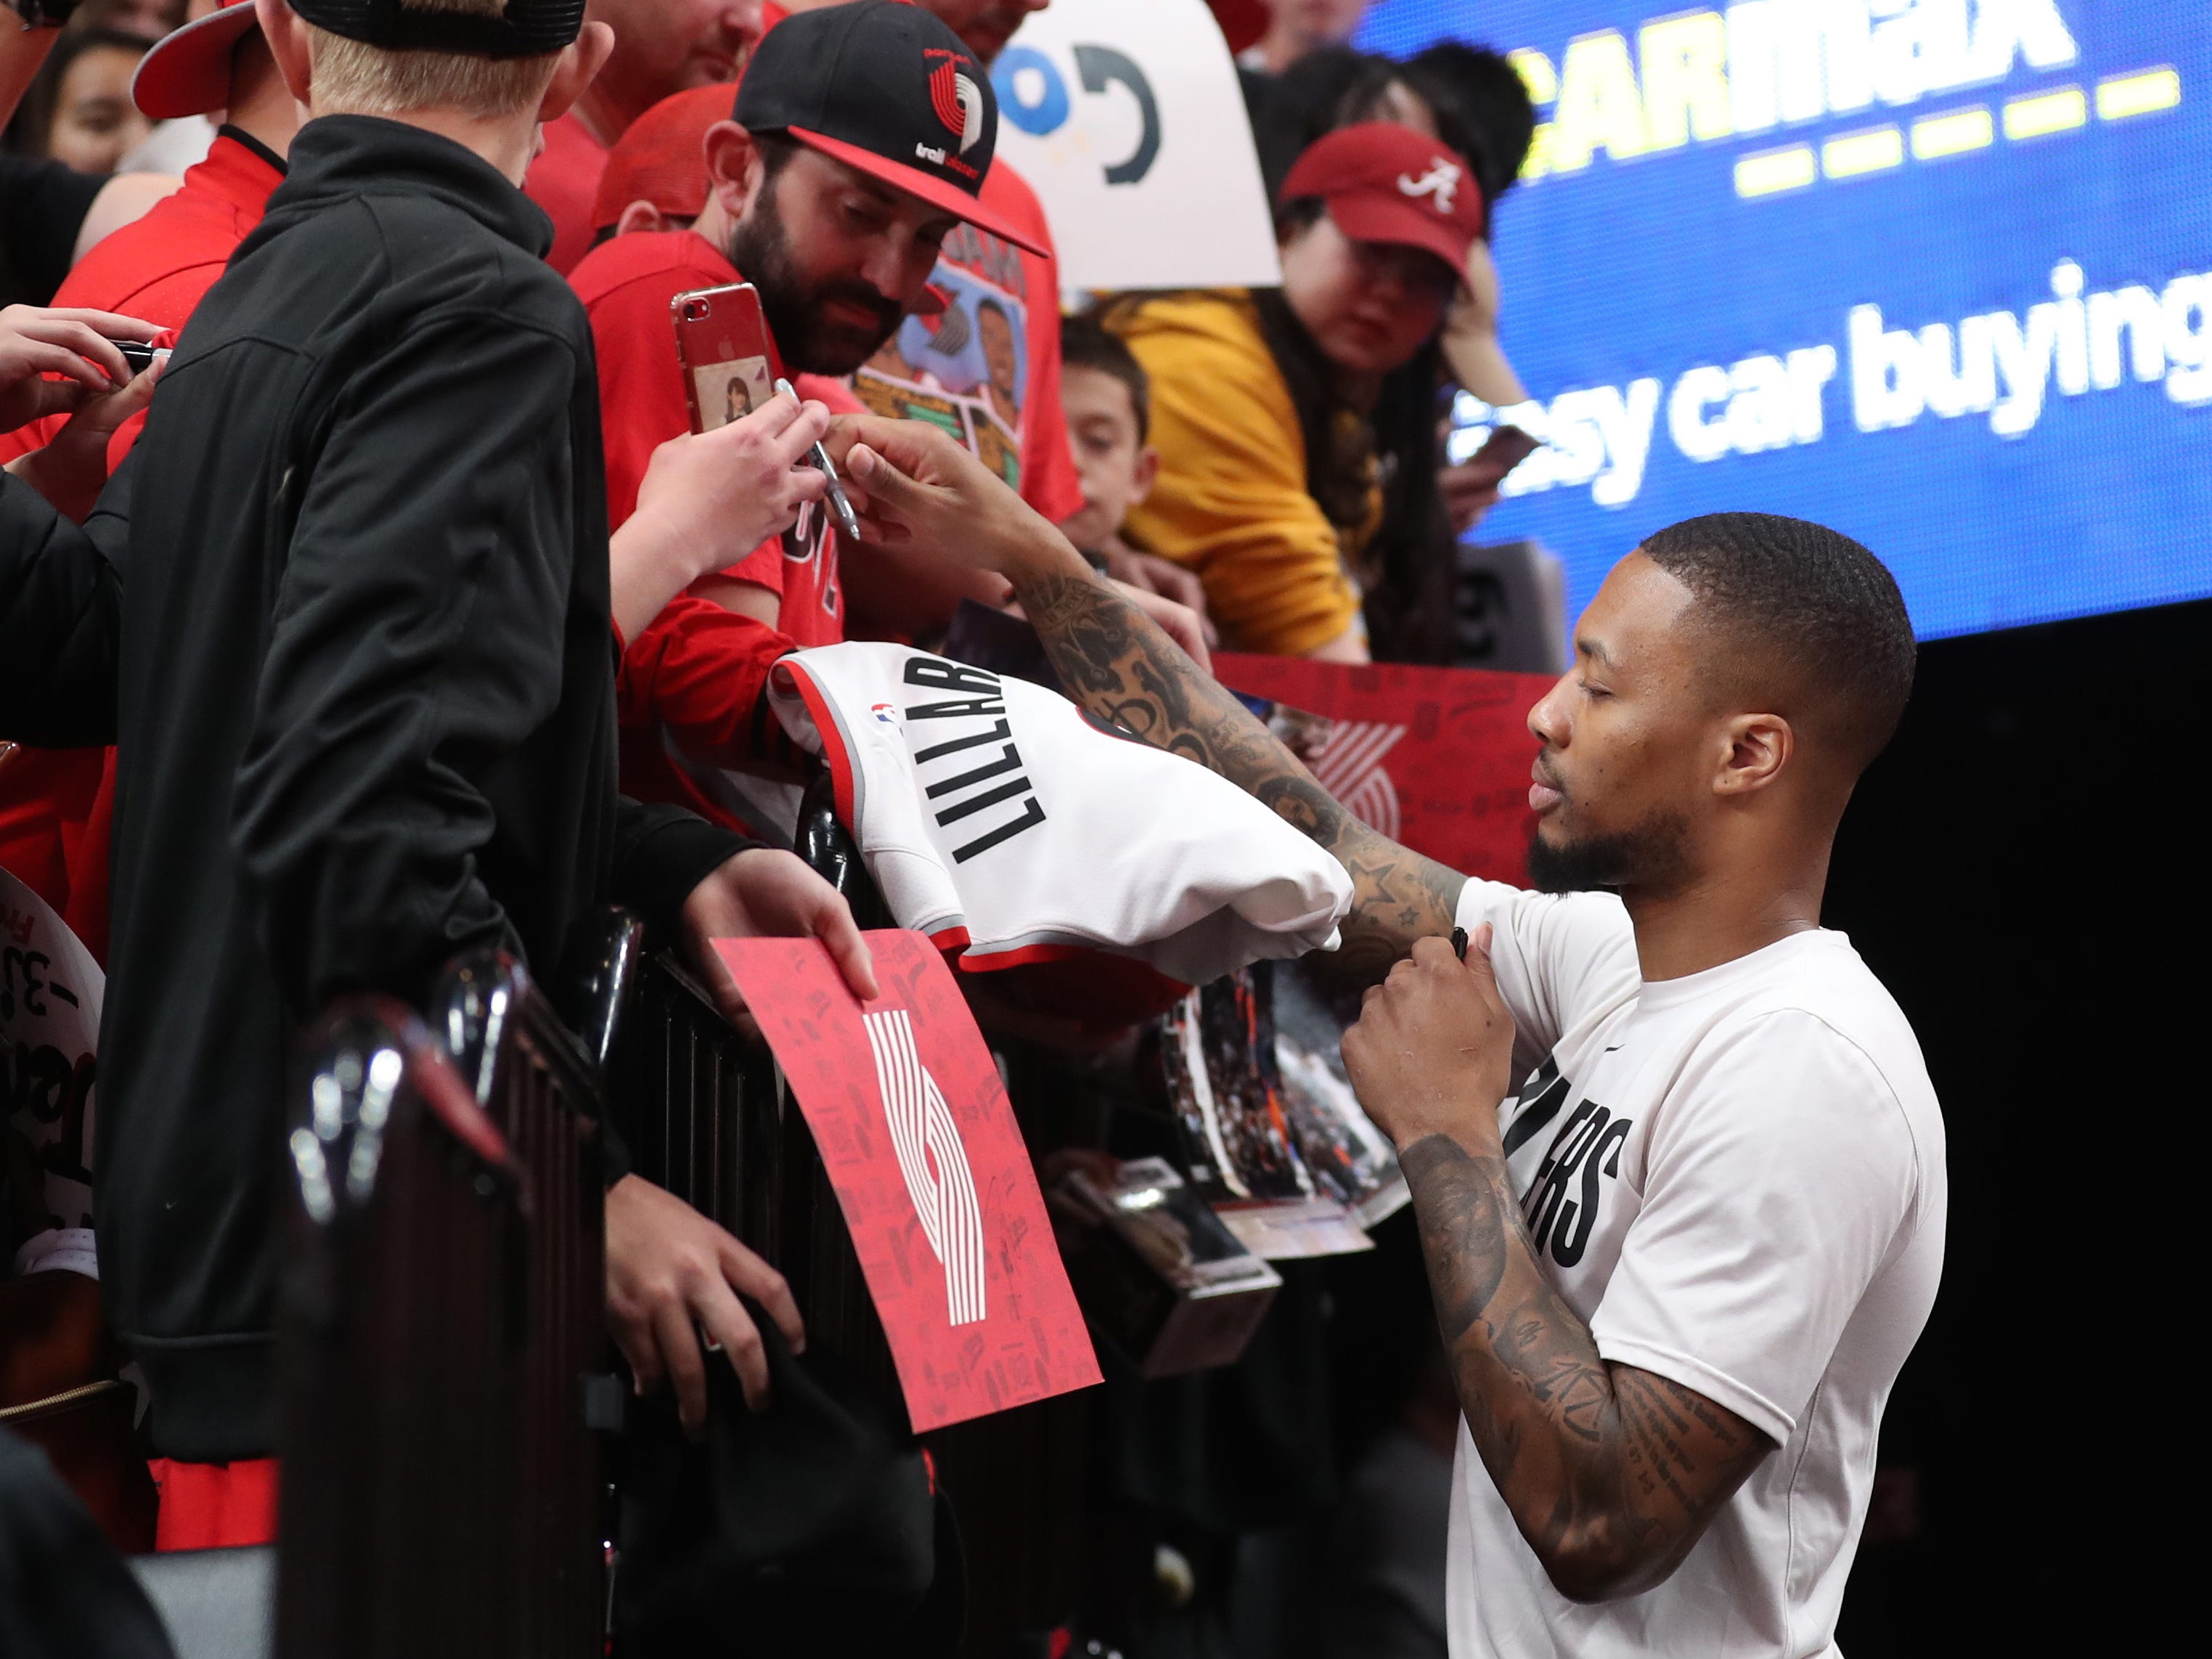 May 5: Blazers star Damian Lillard signs autographs prior to Game 4 against the Nuggets in Portland.